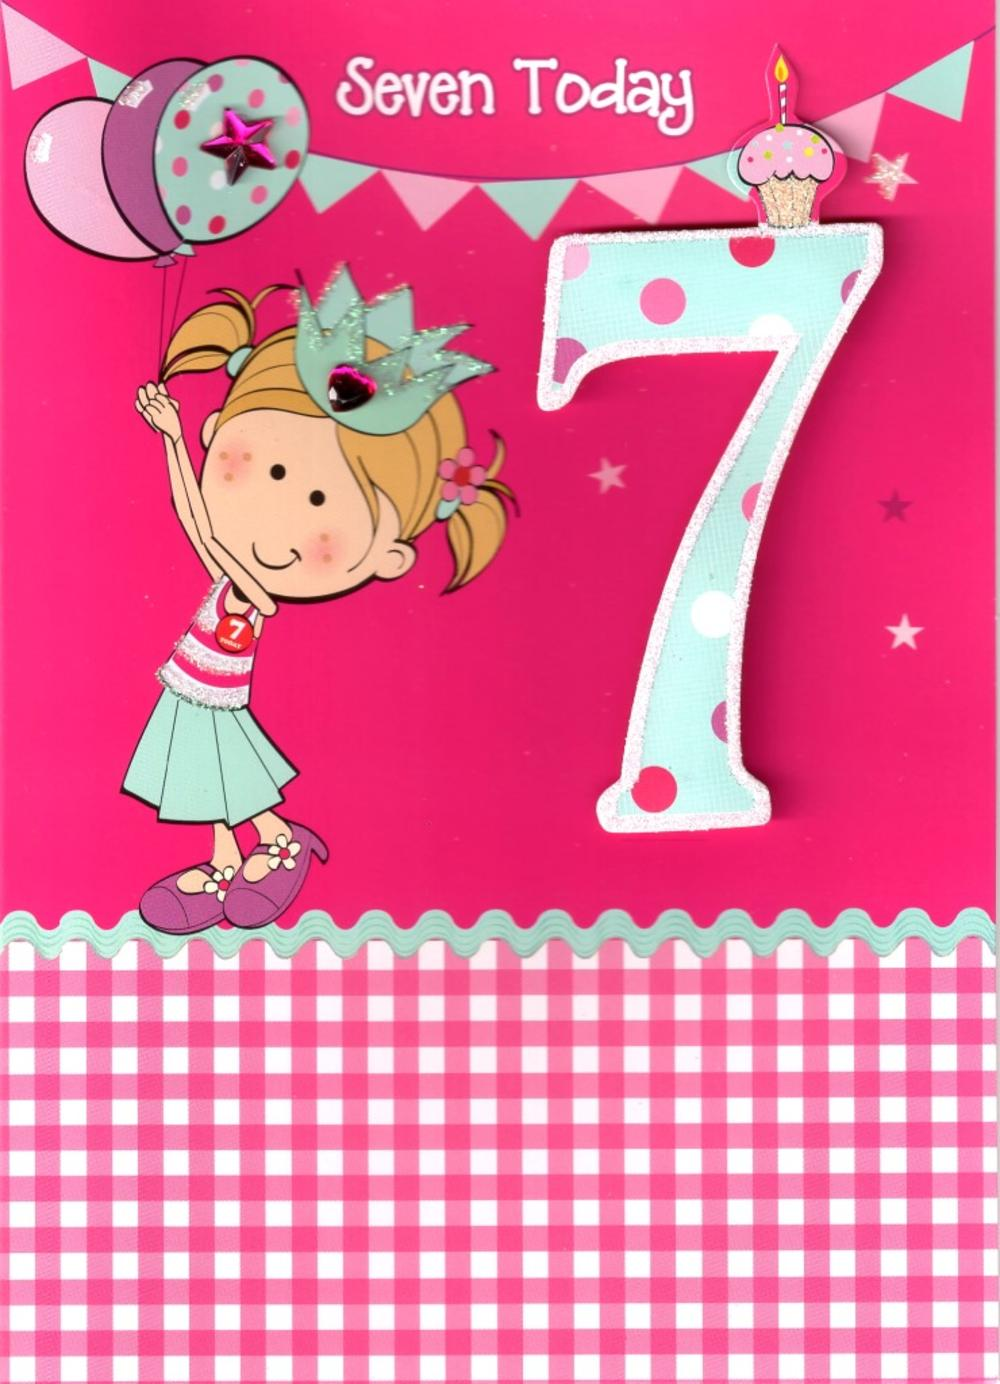 Girls 7th Birthday 7 Seven Today Card Cards Love Kates